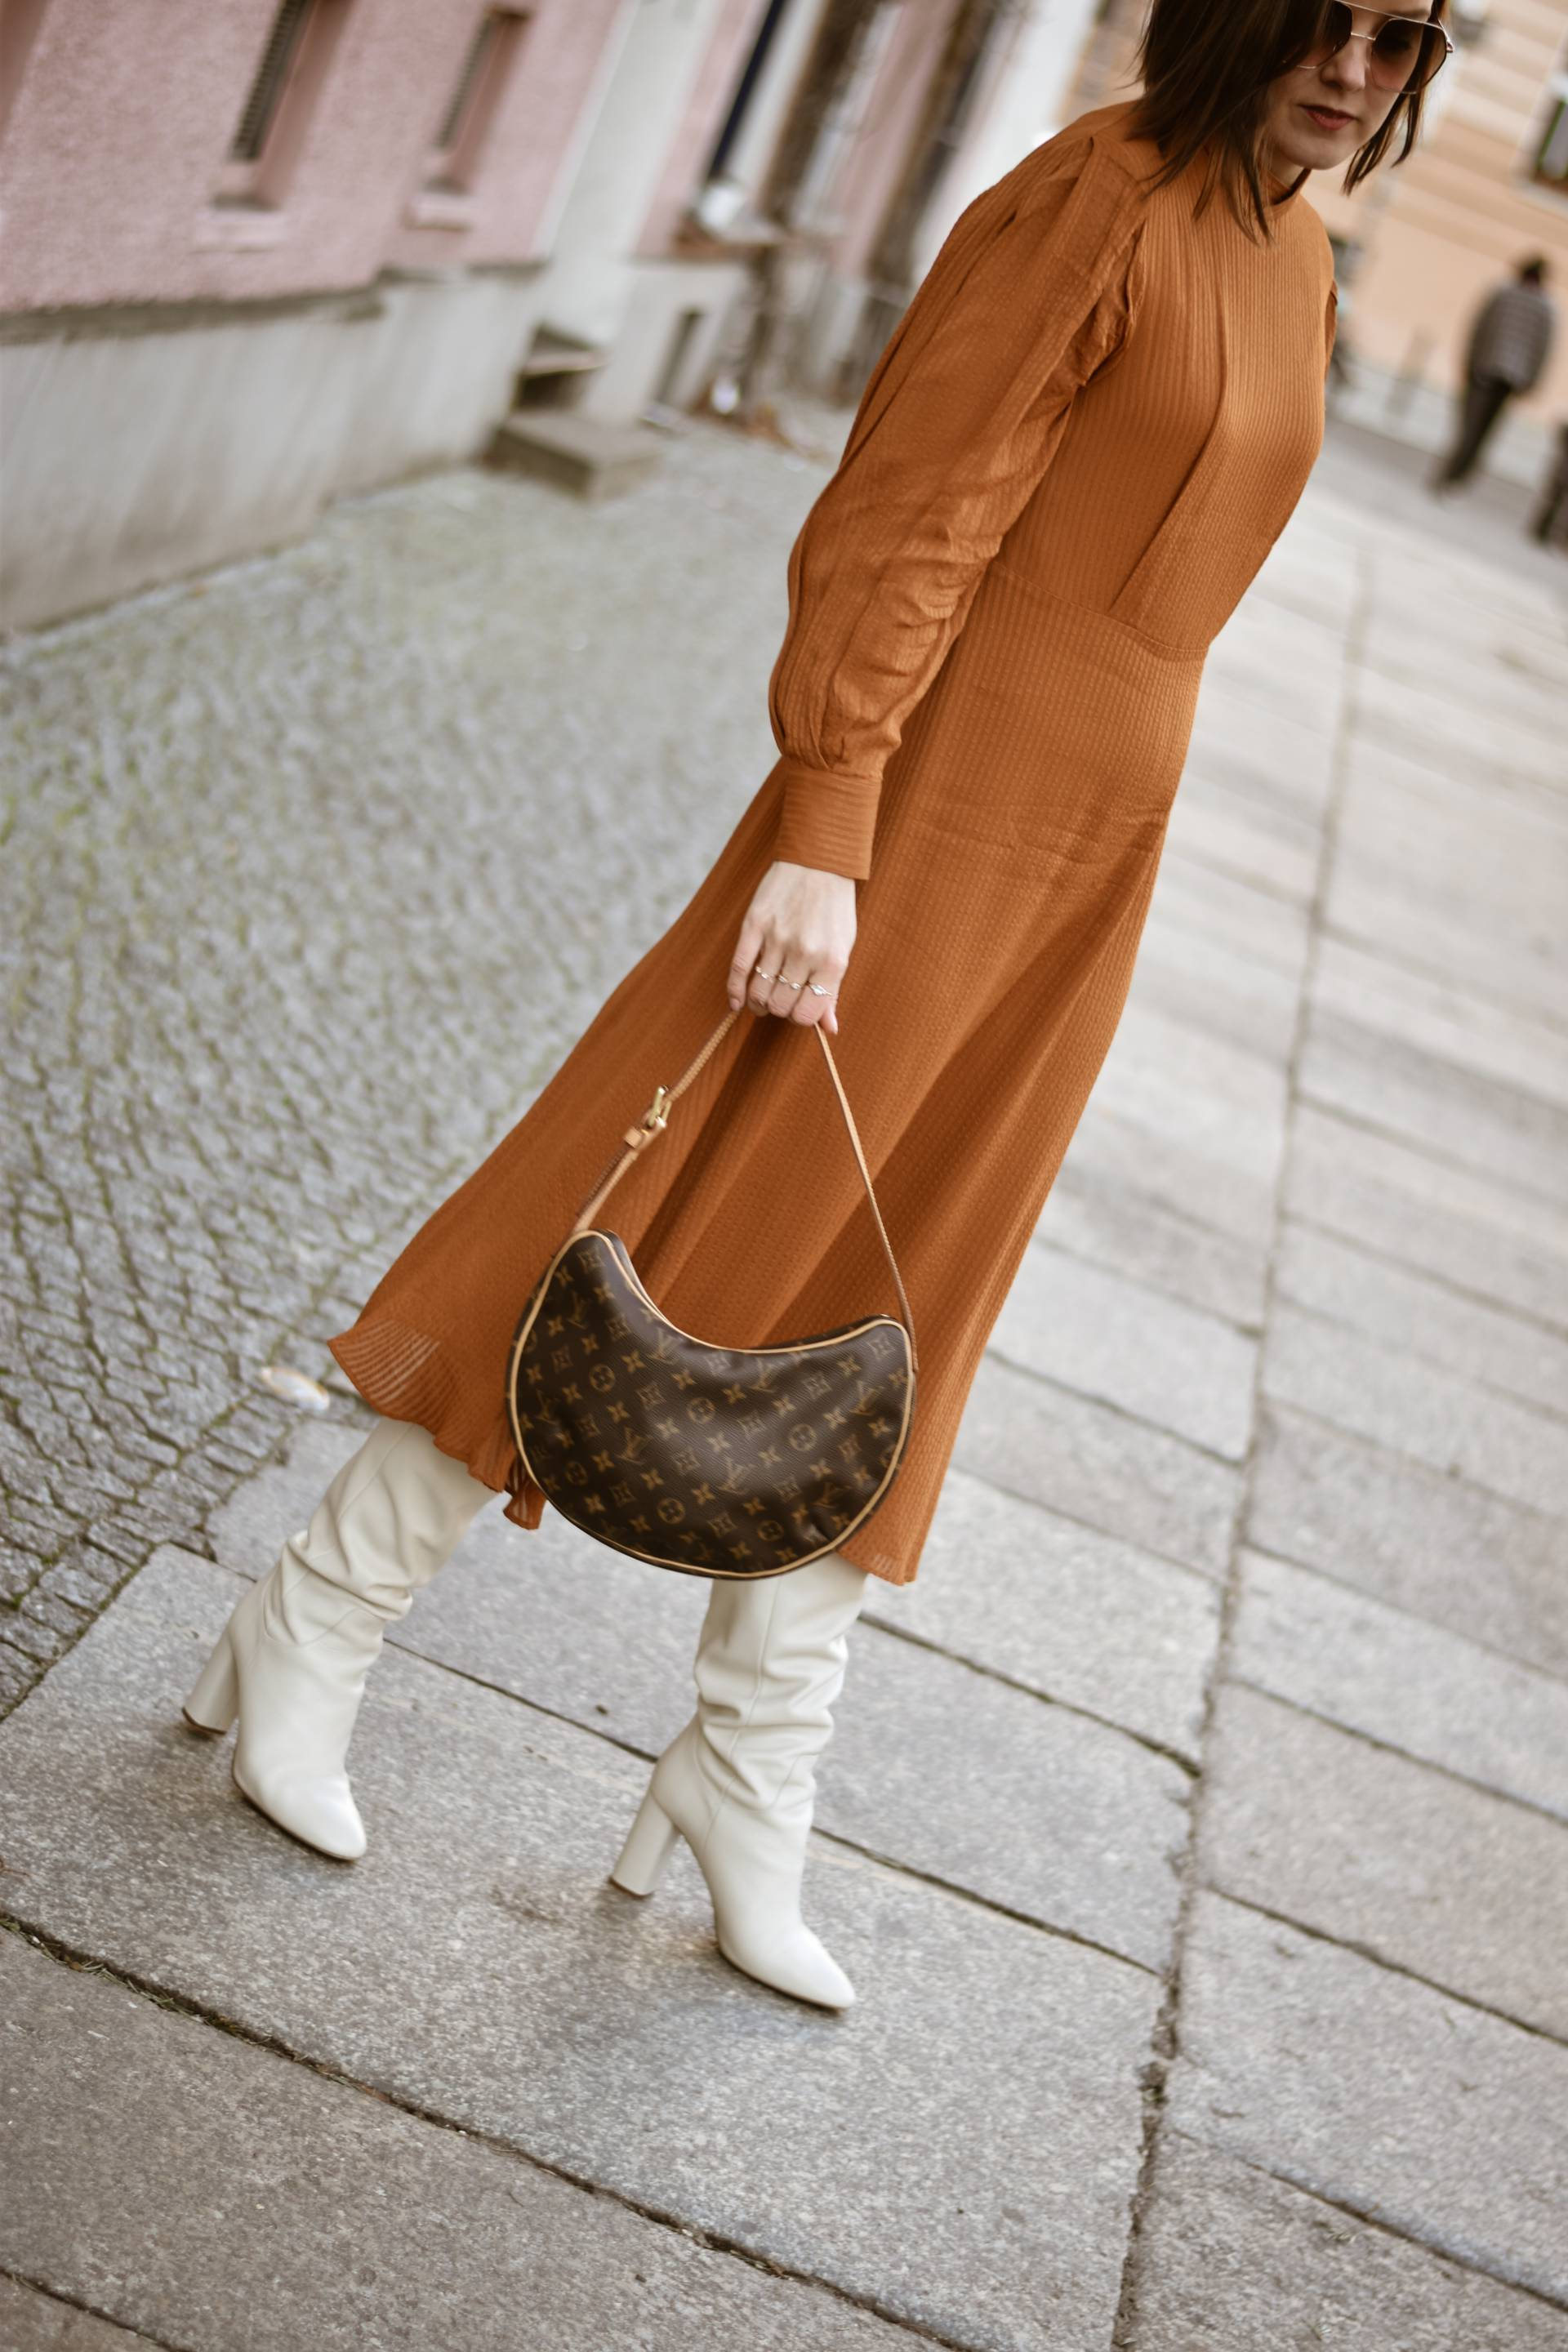 style-appetite-retro-vibes-other-stories-kleid-weise-lederboots